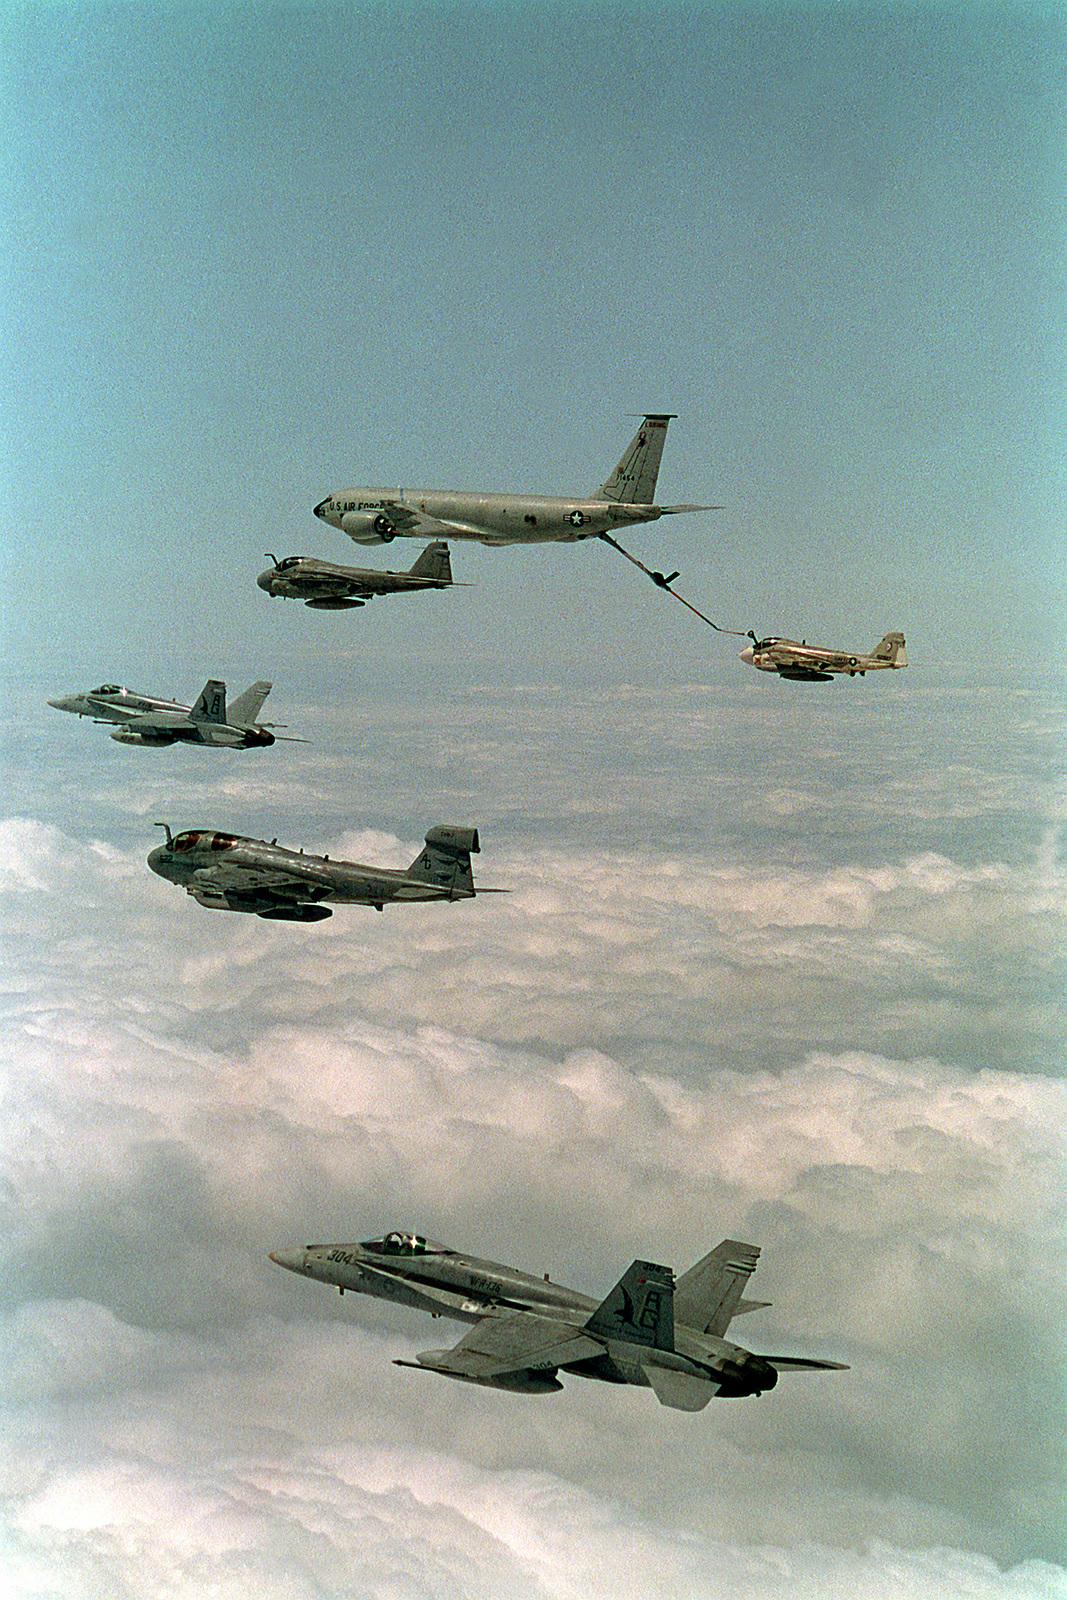 A KC-135D Stratotanker aircraft refuels a KA-6D Intruder aircraft as an A-6E Intruder, a Tactical Electronic Warfare Squadron 140 (VAQ-140) EA-6B Prowler aircraft, and two Strike Fighter Squadron 136 (VFA-136) F/A-18C Hornet aircraft await refueling while flying in formation over the Persian Gulf